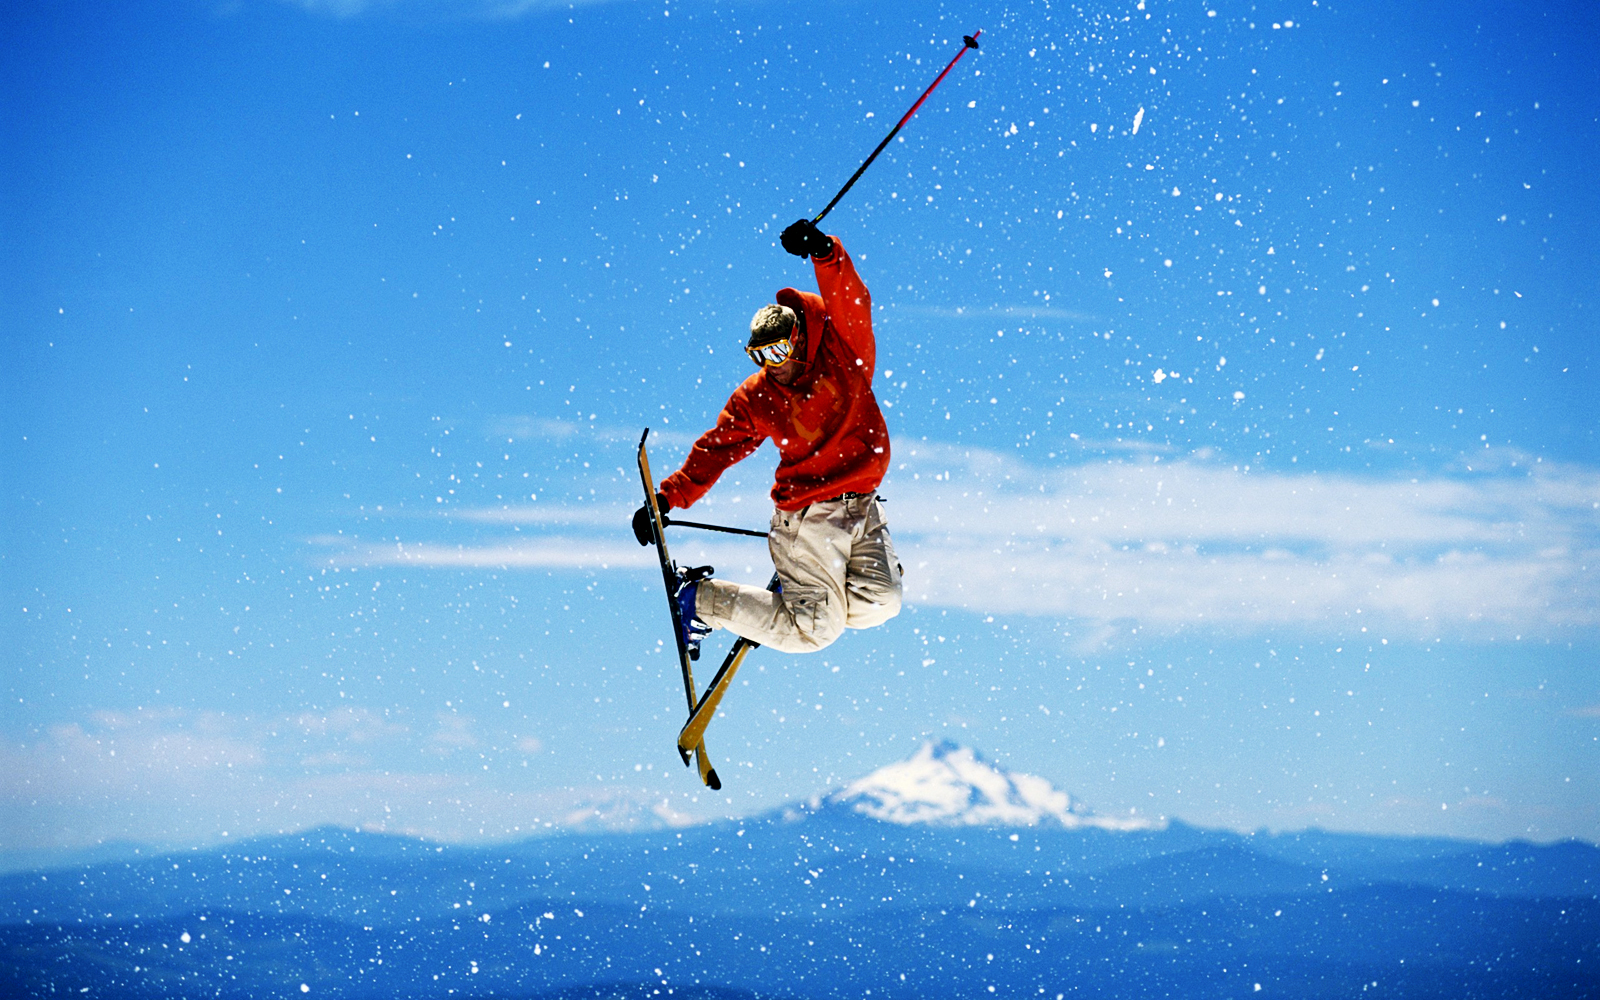 Skiing Winter Sports HD Wallpapers